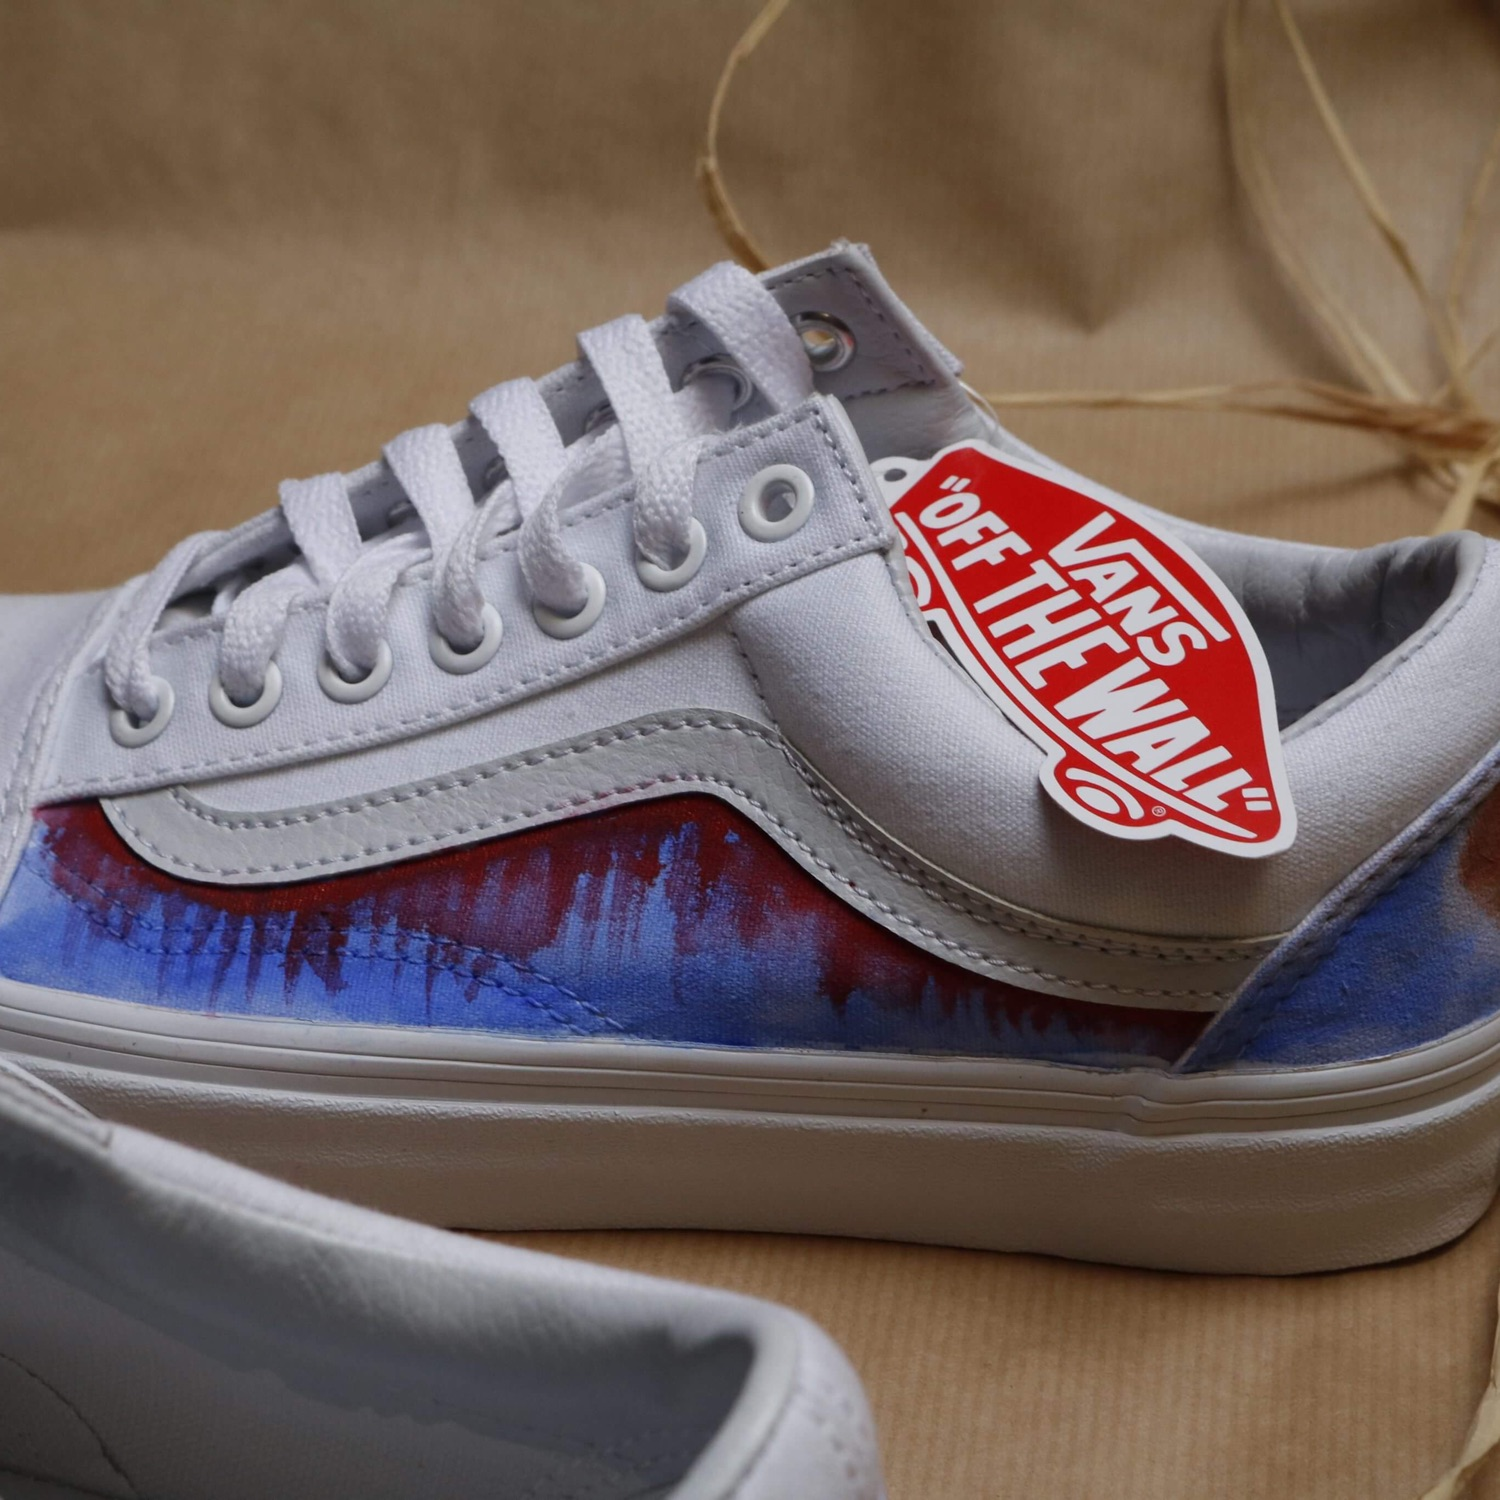 Custom Old Skool Skool Vans Vans Vans Custom Vans Old Custom Old Skool Custom UVpMqSzG